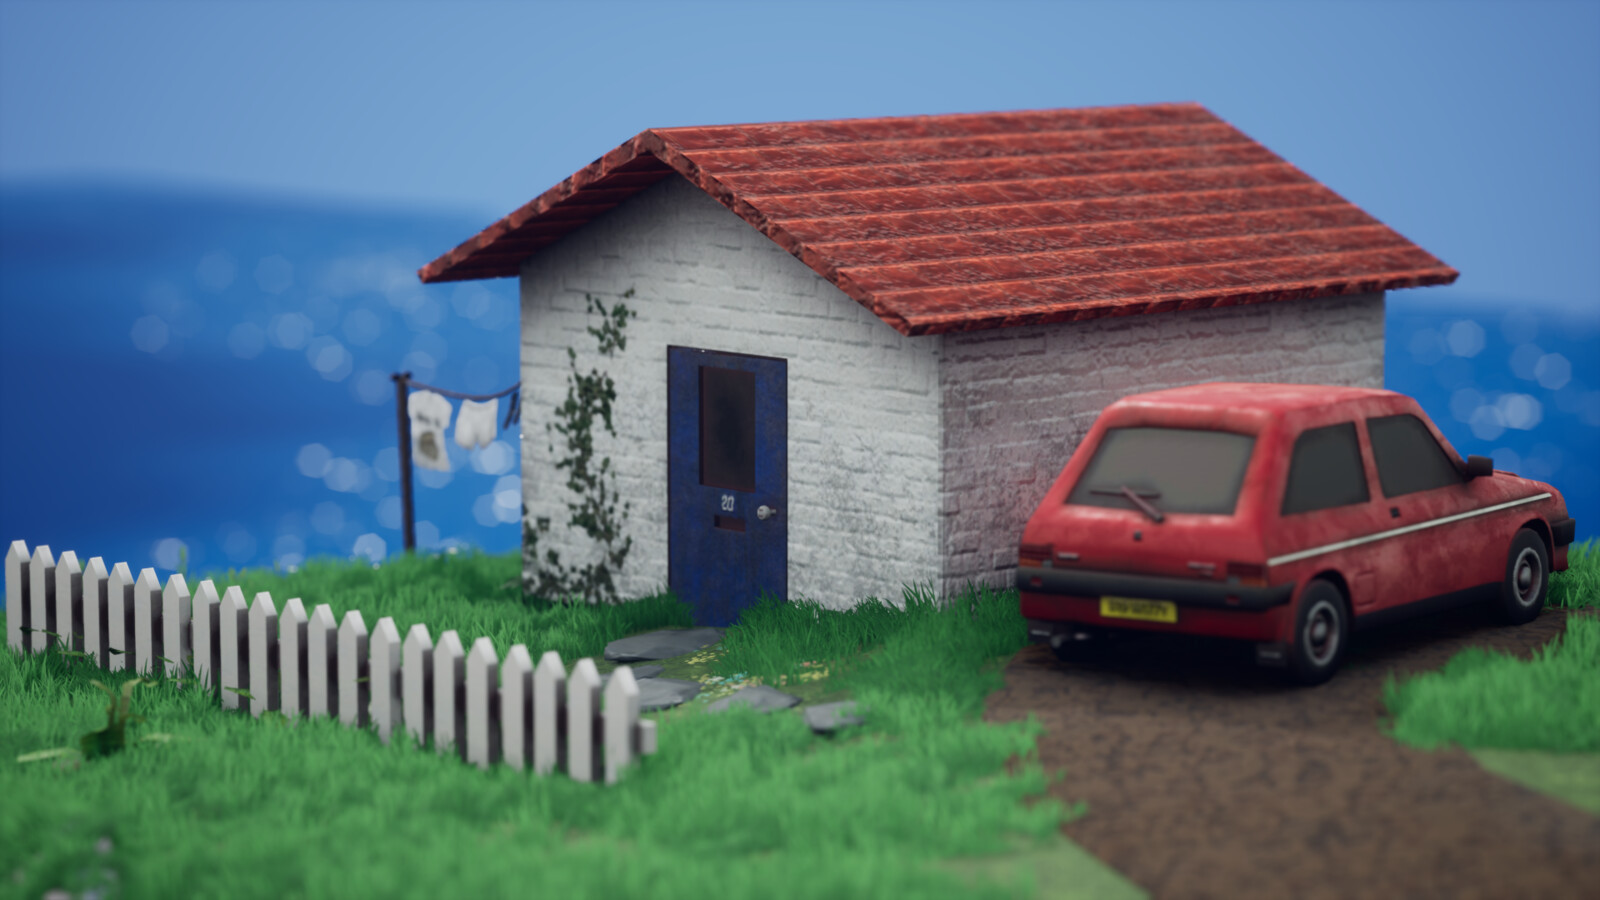 The Willy Residence. Grass and shrubs are from the UE4 marketplace